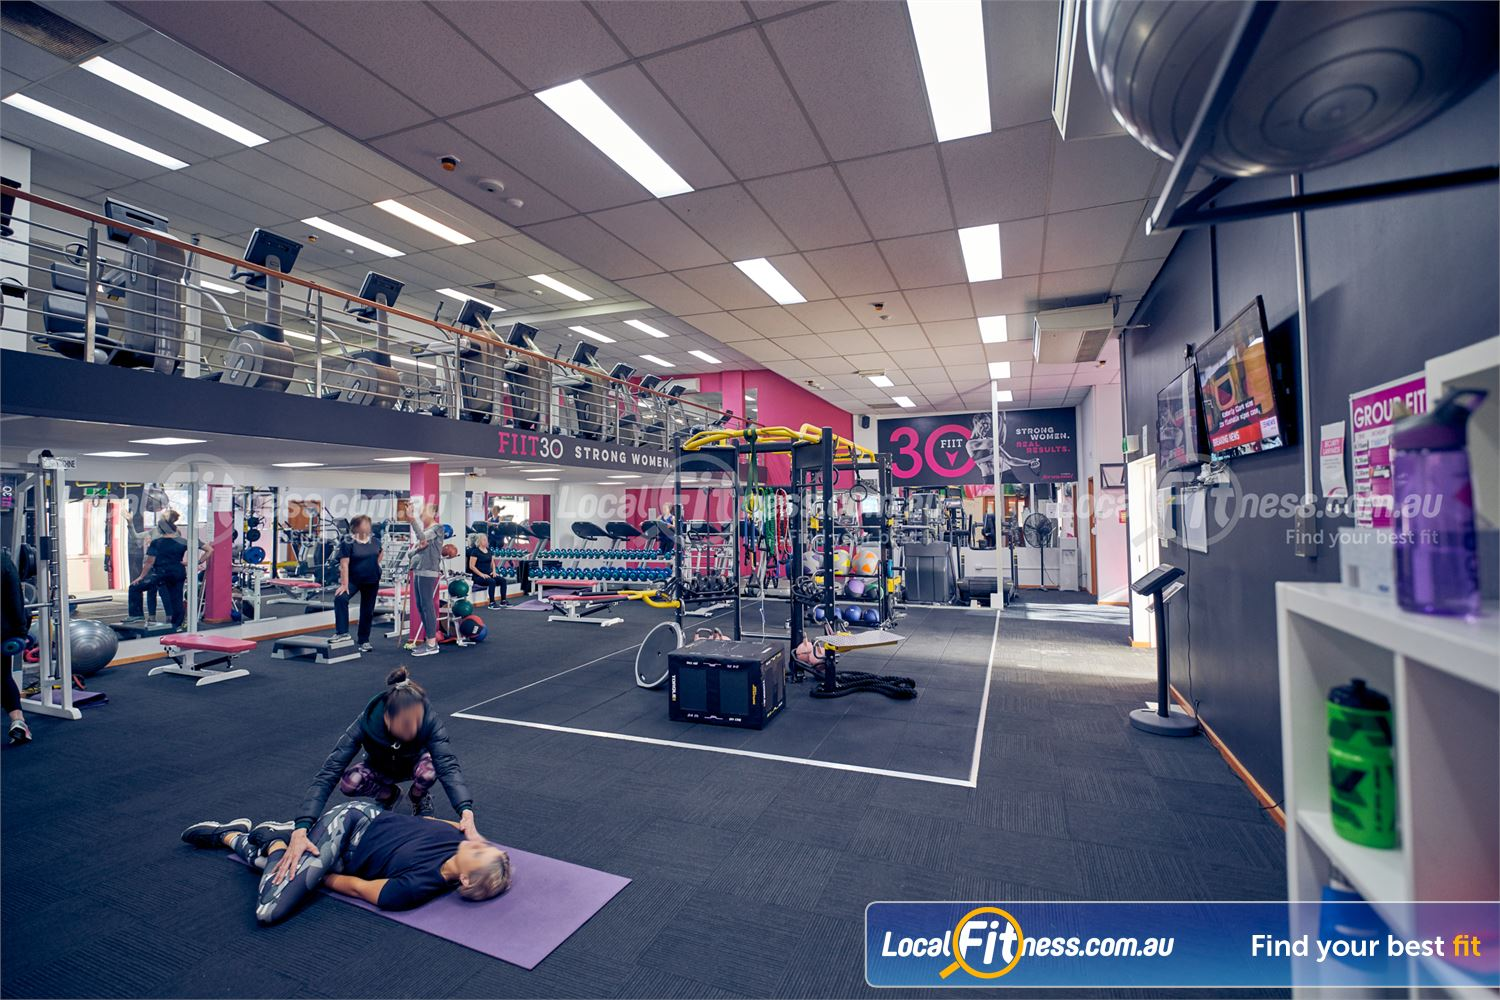 Fernwood Fitness Carlton Welcome to to the multi-level Fernwood Fitness Carlton women's gym.